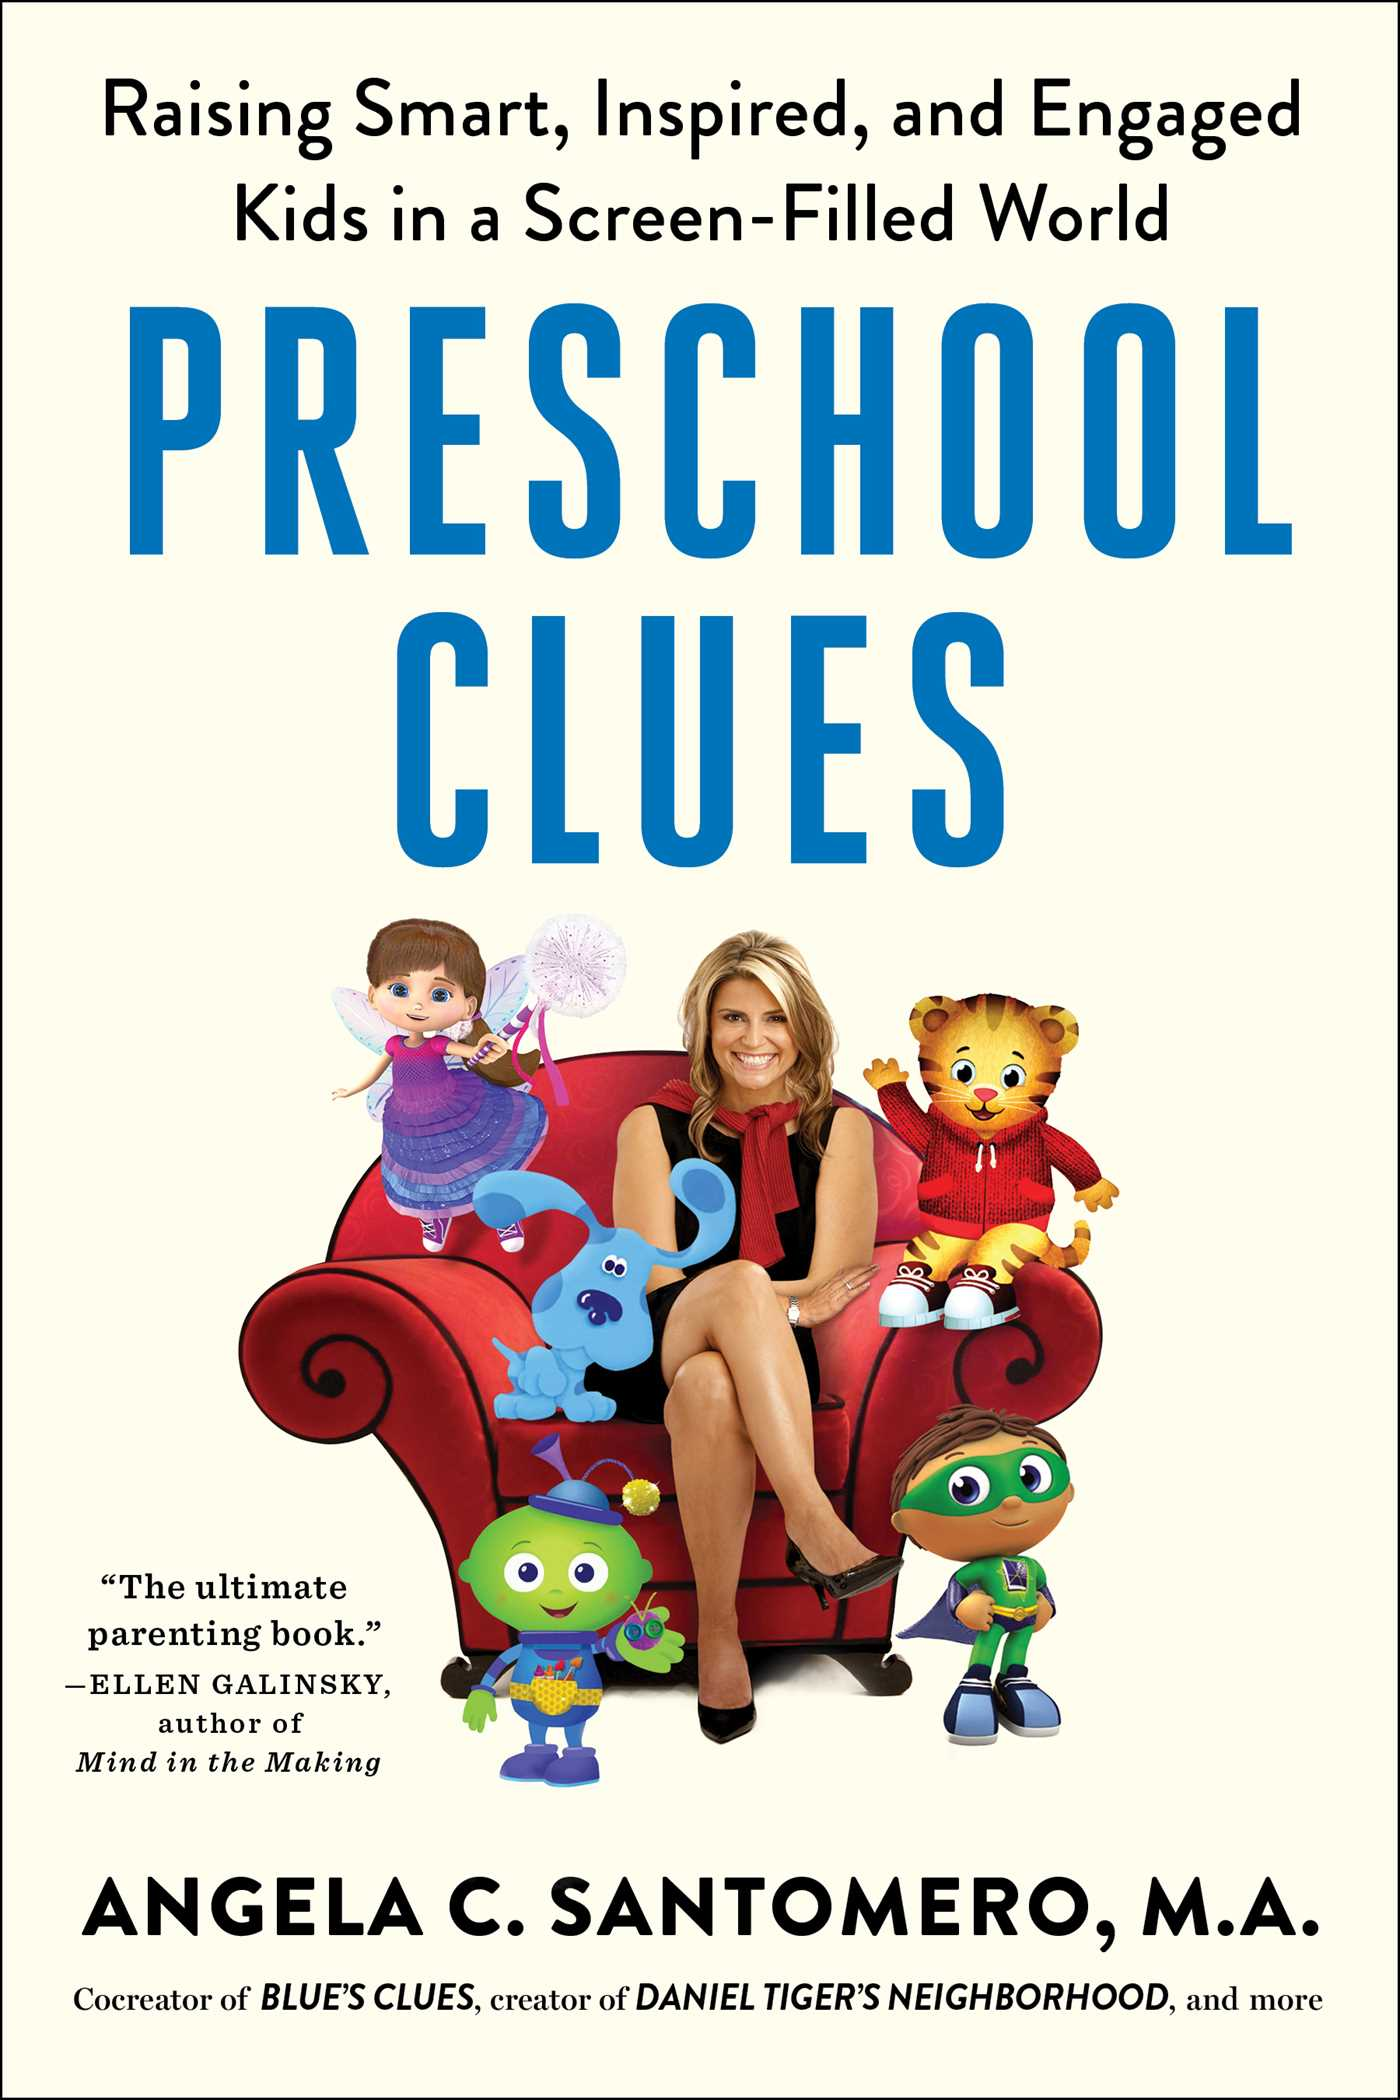 Pre-school education and upbringing: a selection of sites